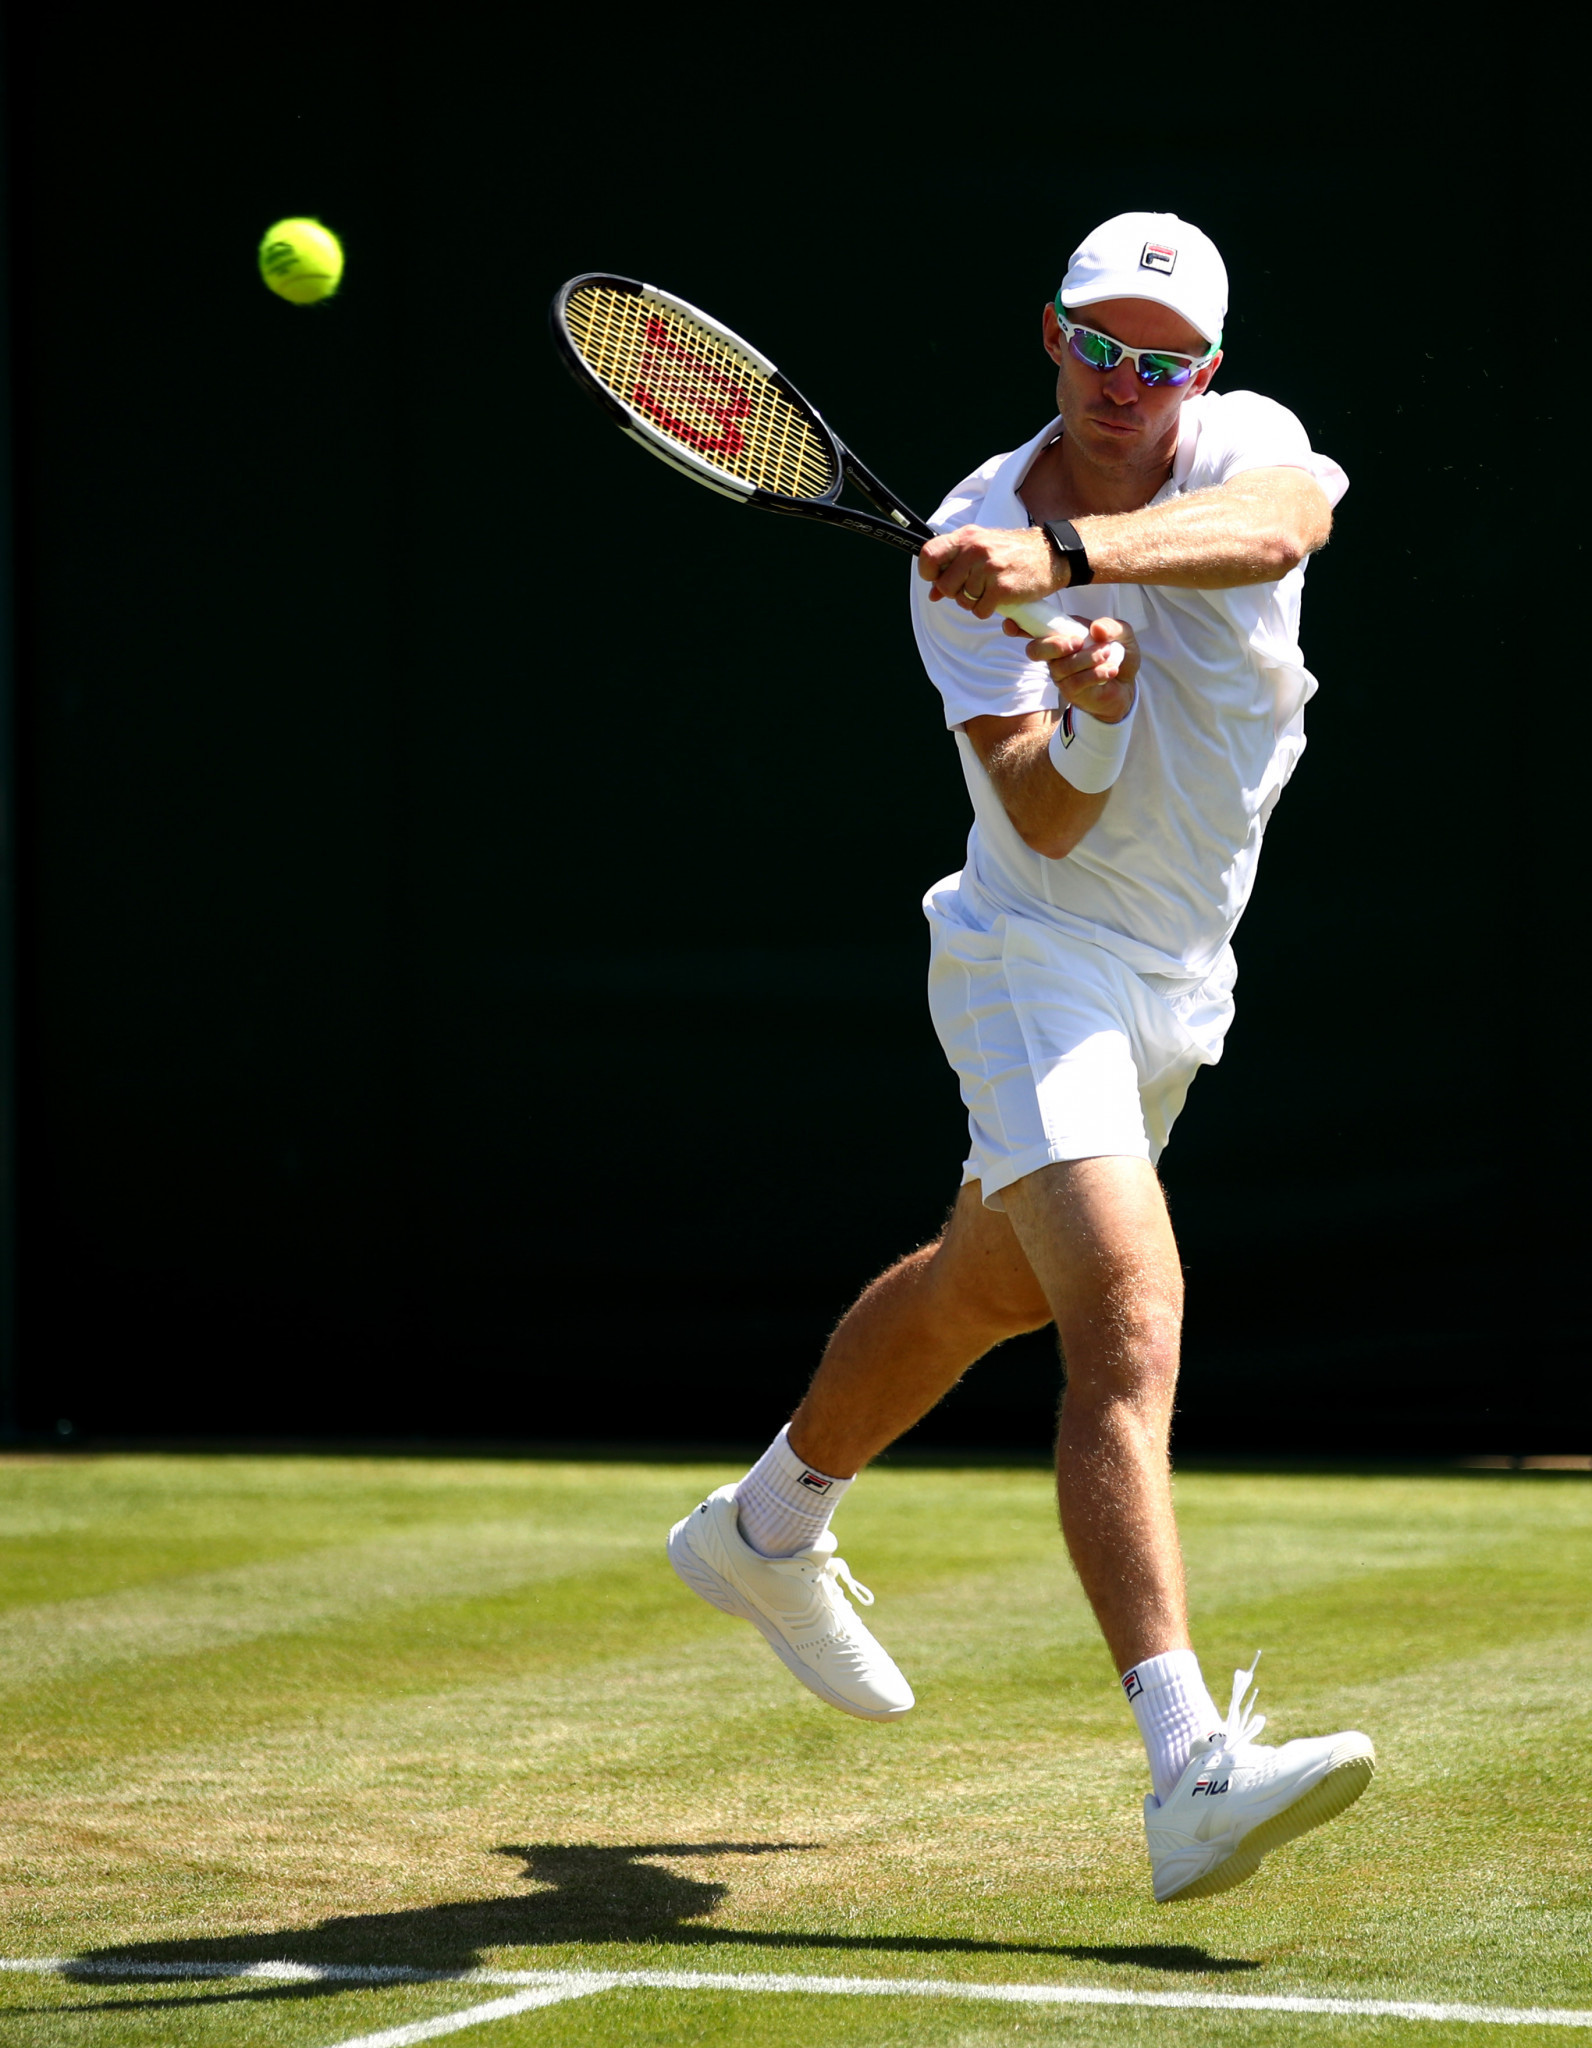 John Peers of Australia played his part in winning the first final-set tiebreak at Wimbledon ©Getty Images